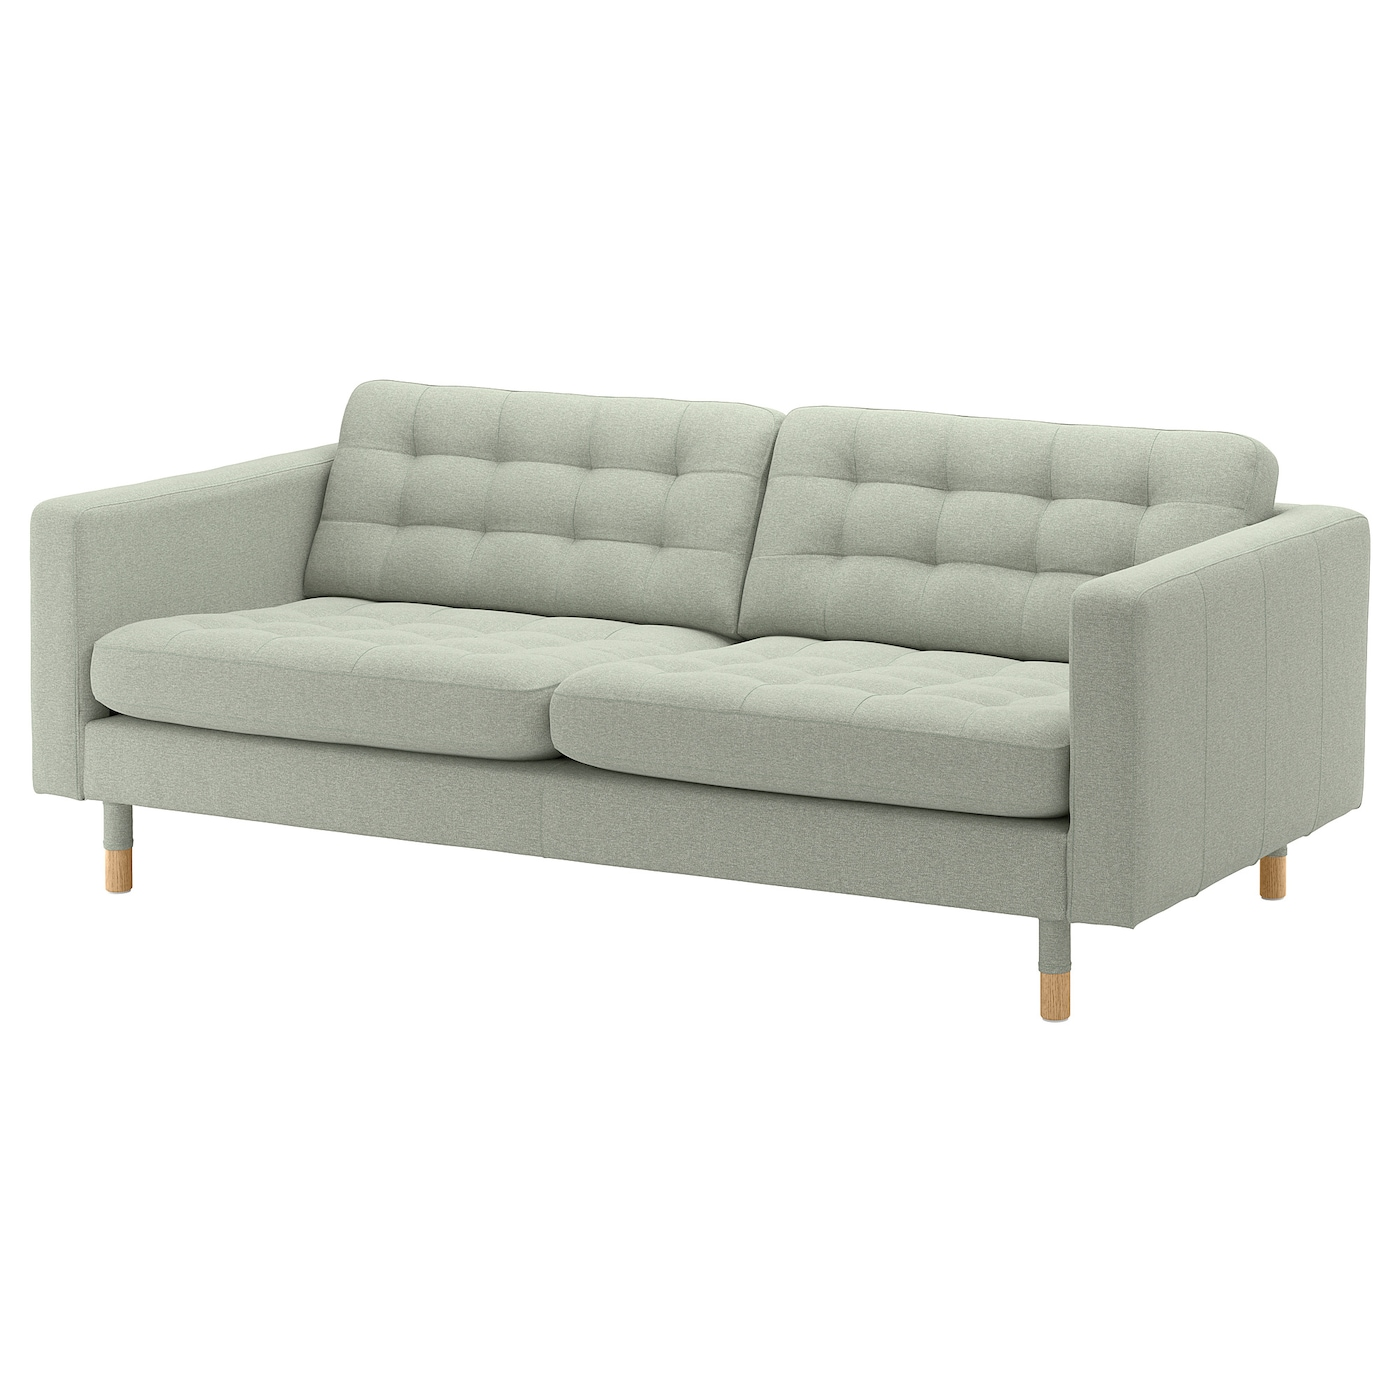 Ikea Landskrona 3 Seat Sofa Removable Armrests Make It Easy To Add On A Chaise